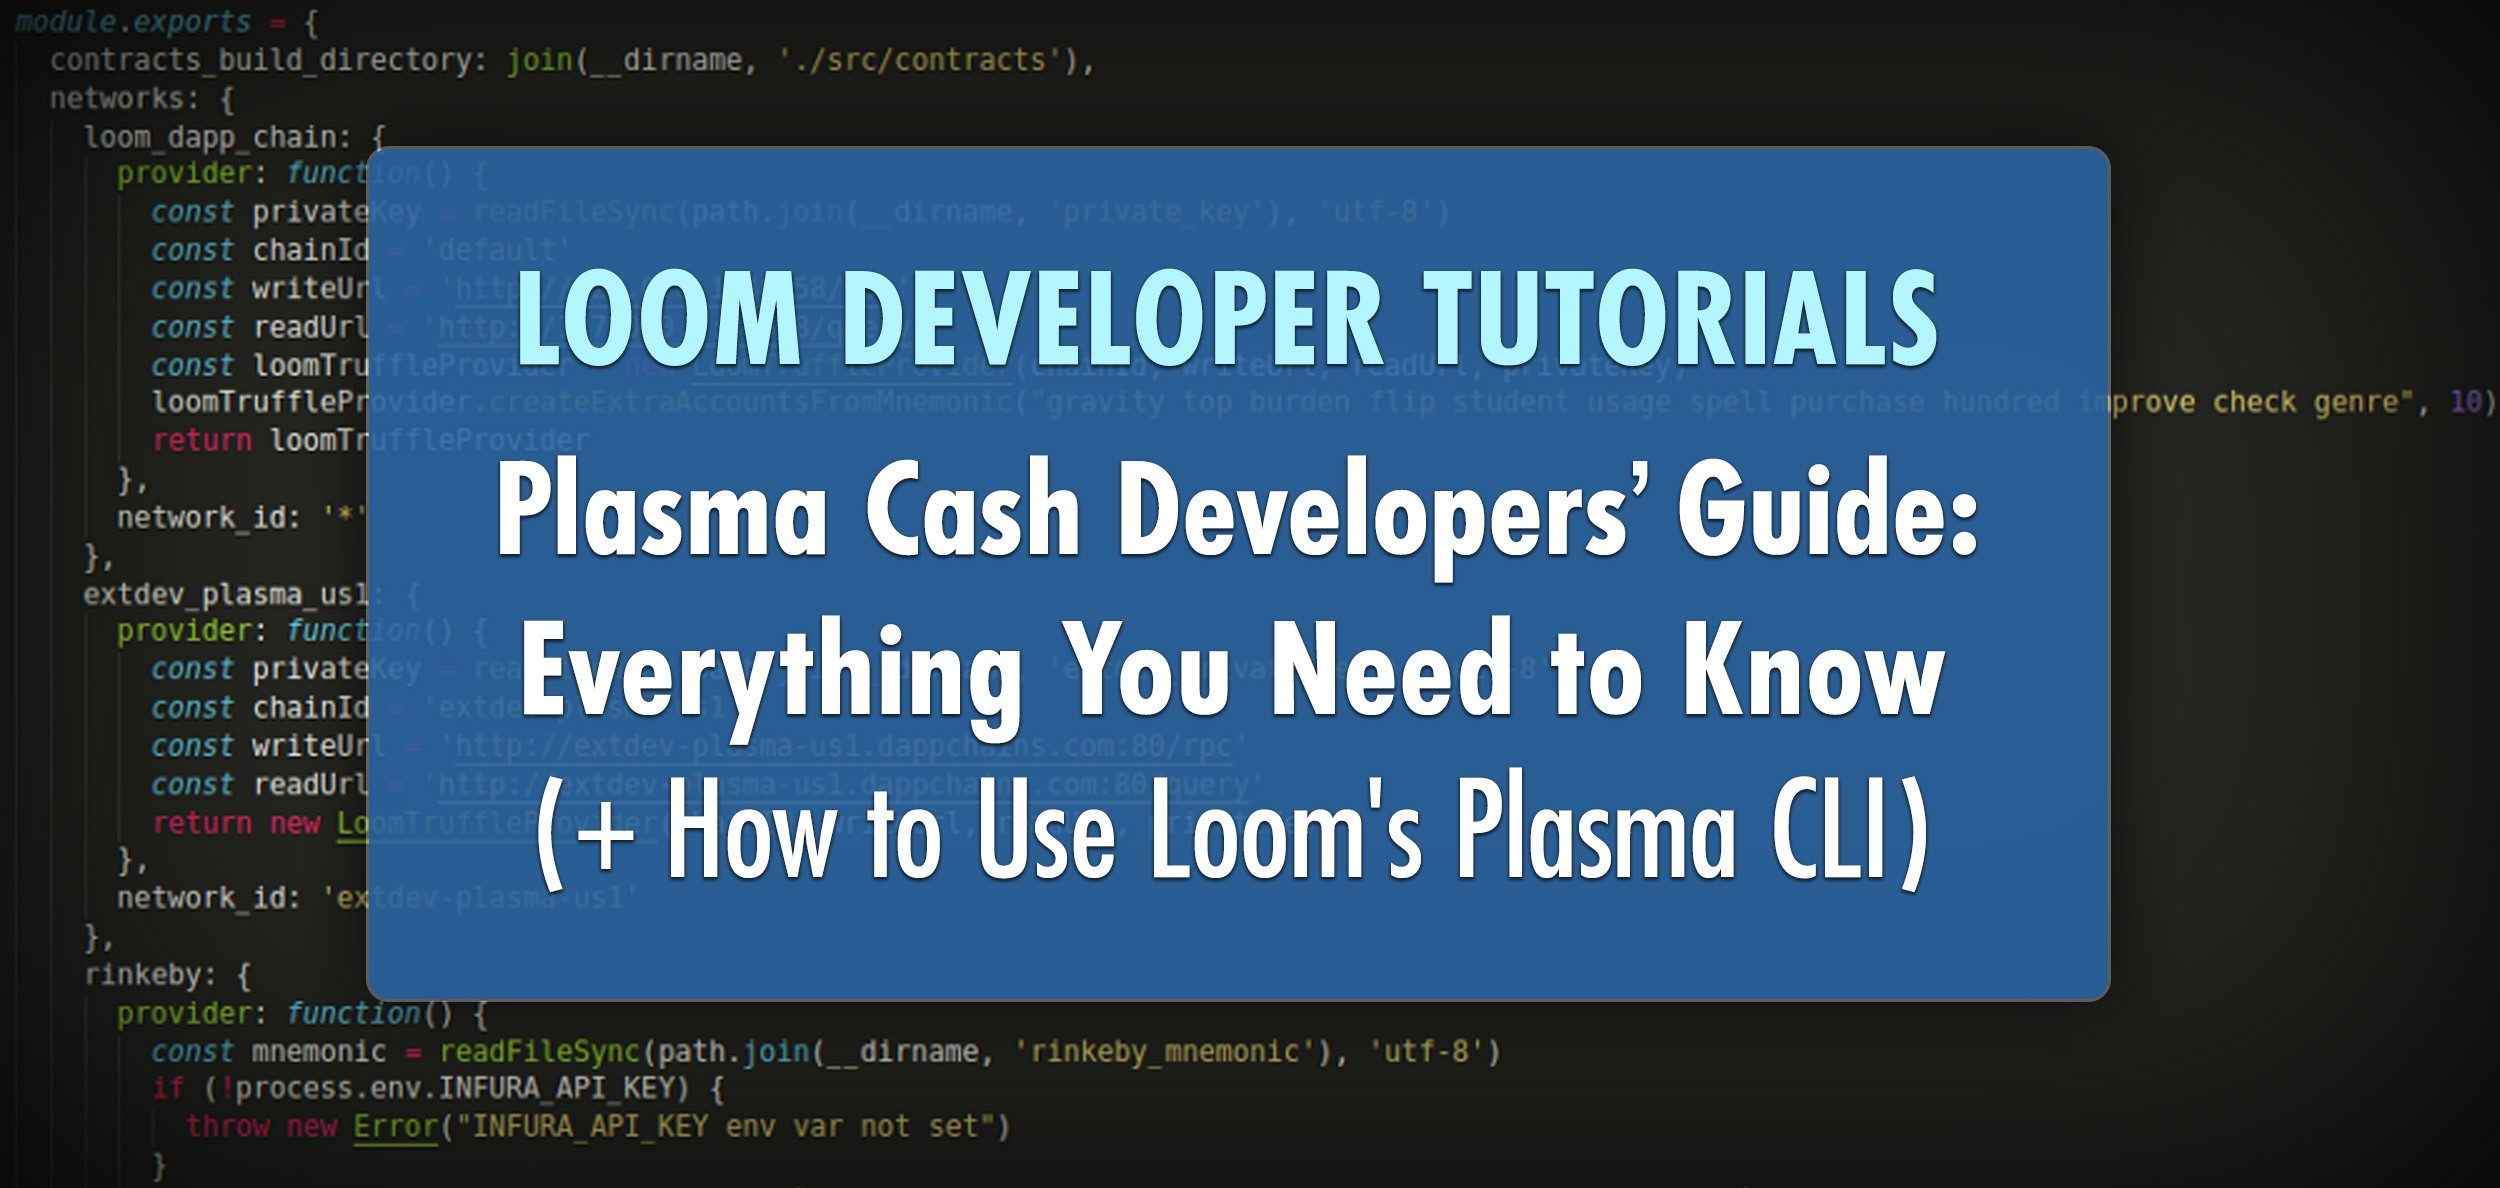 Plasma Cash Developers' Guide: Everything You Need to Know (+ How to